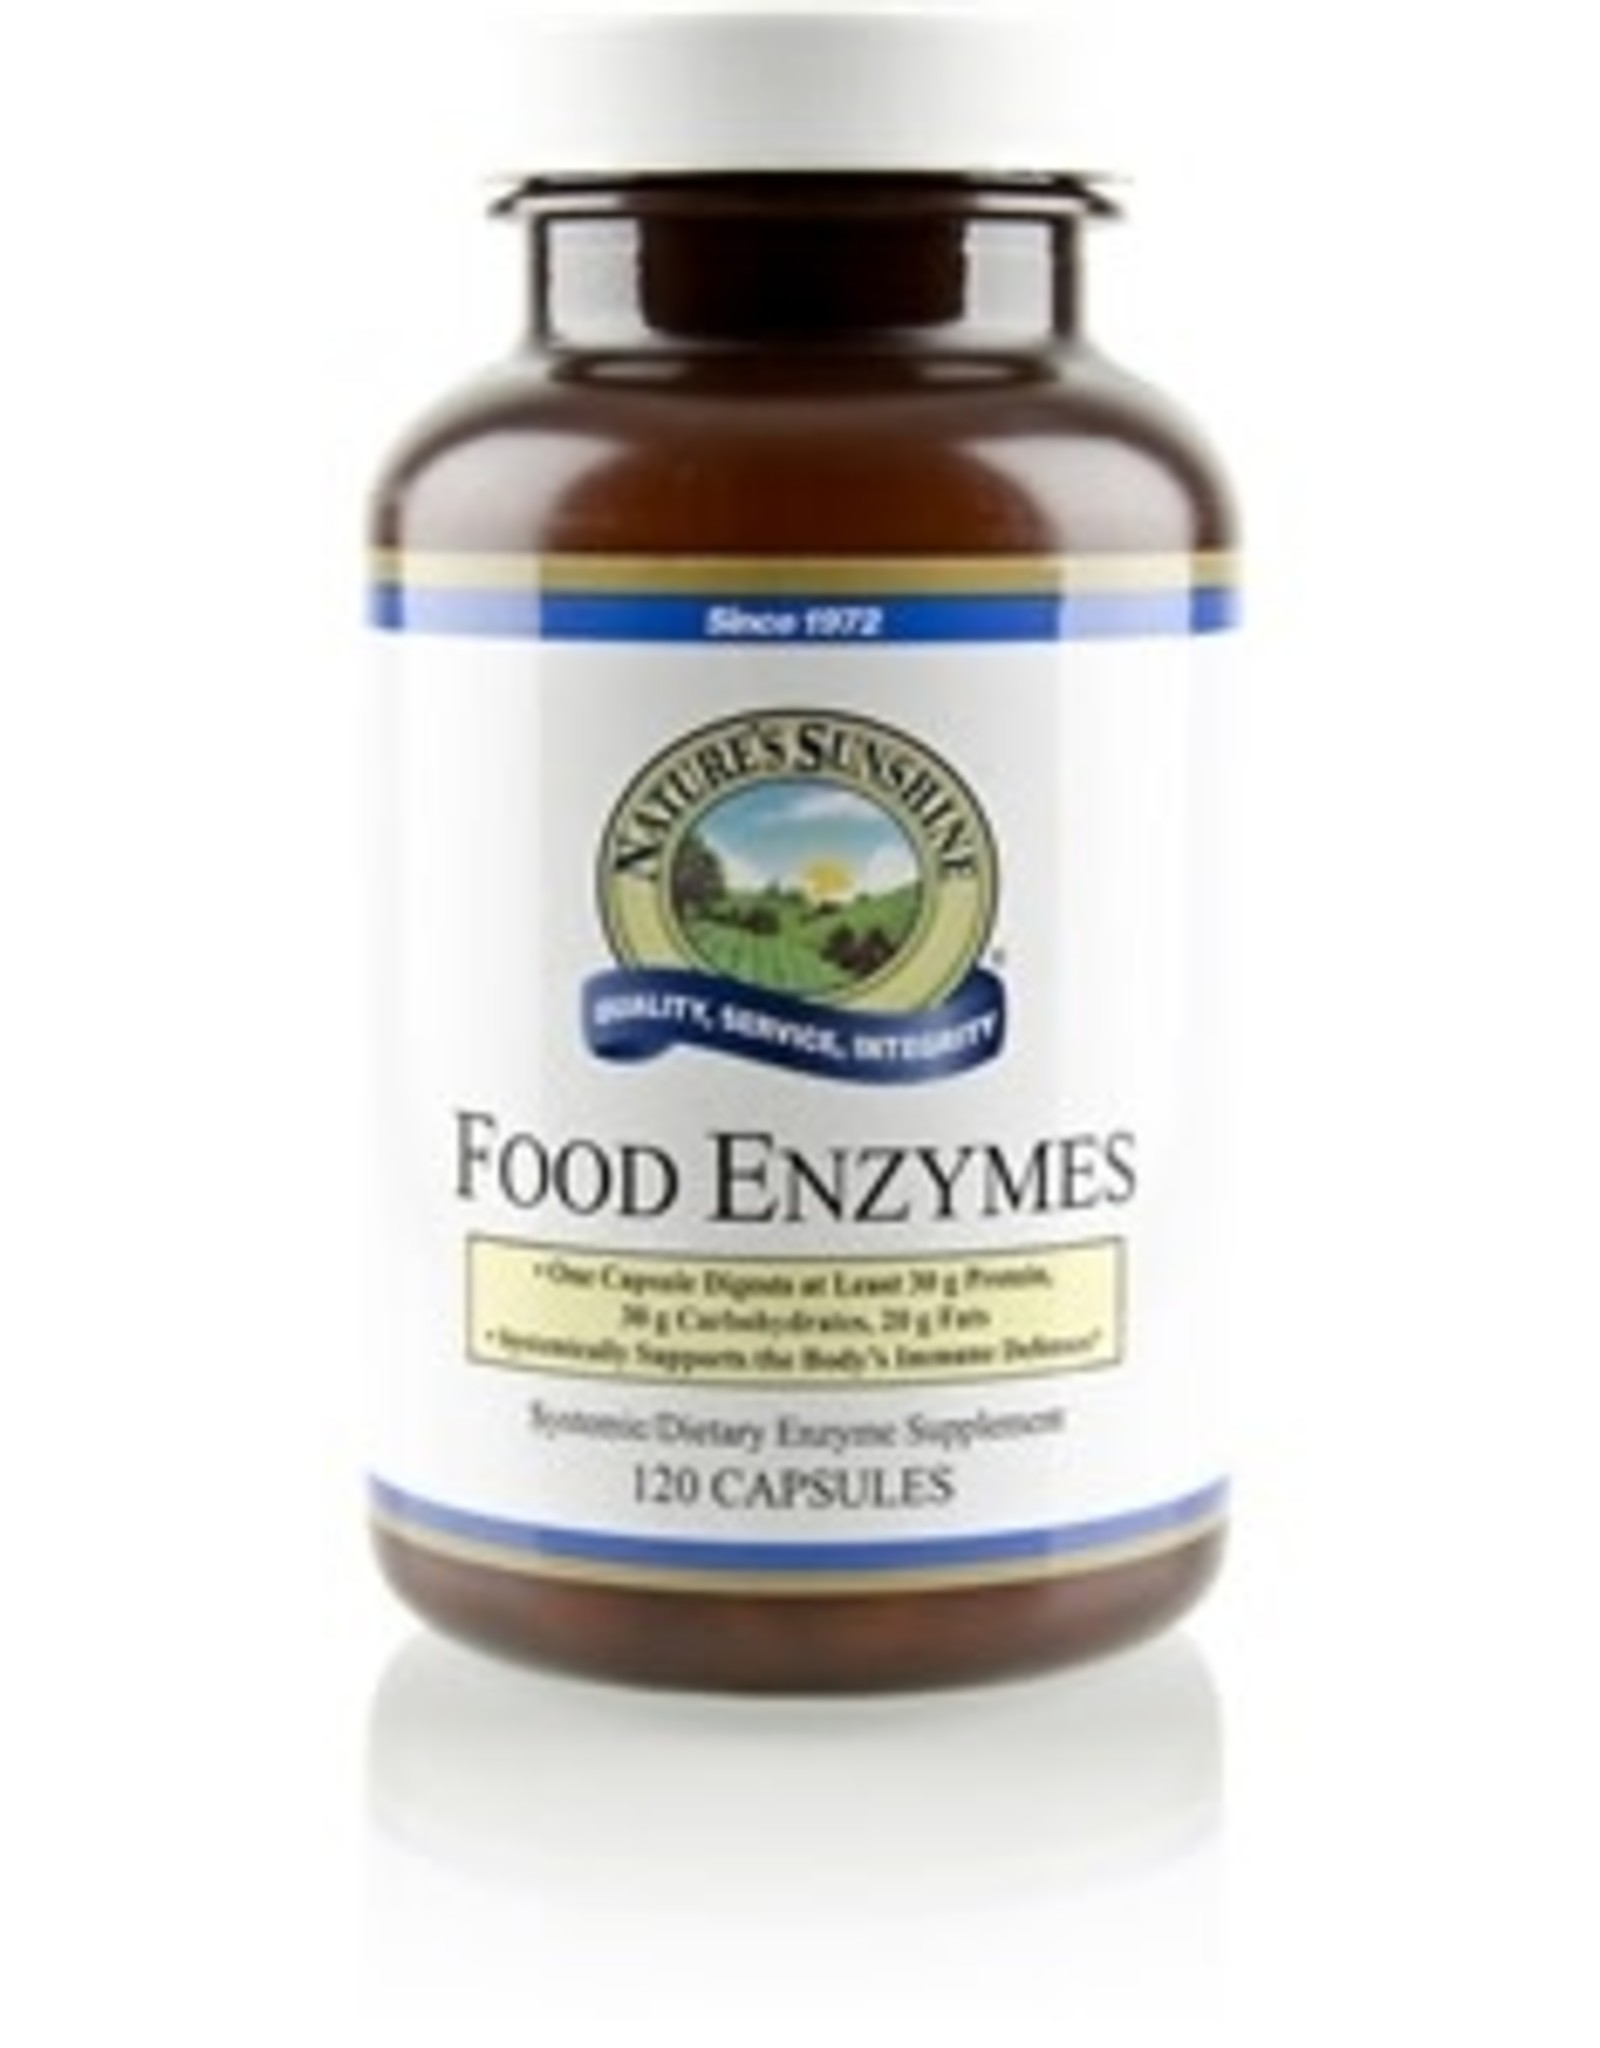 Nature's Sunshine Food Enzymes (120 caps)